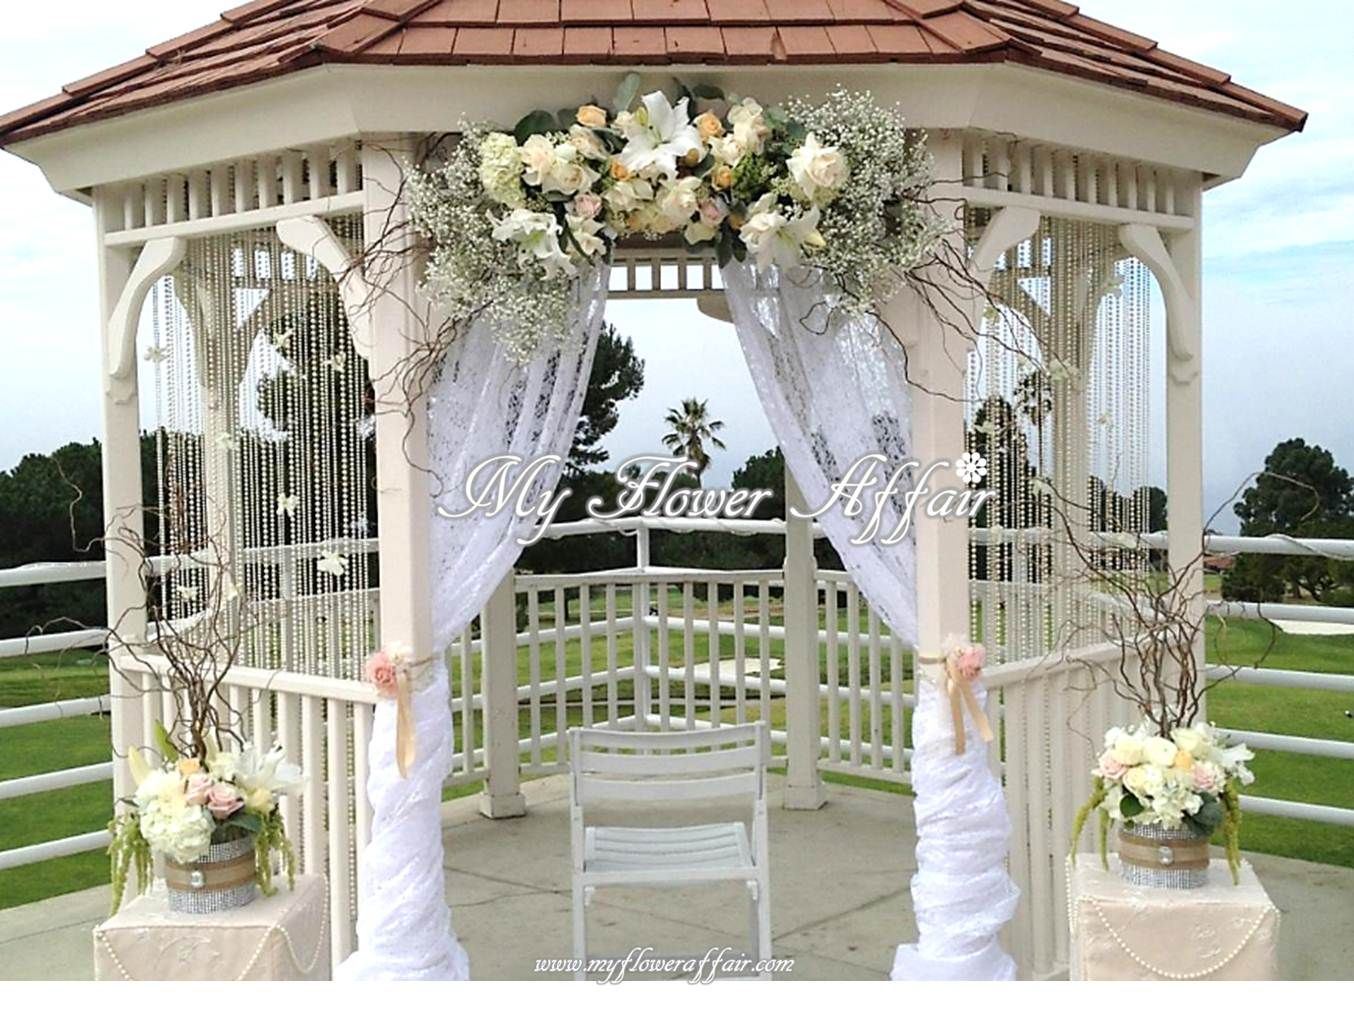 My Flower Affair Wedding Gazebo Flowers Gazebo Wedding